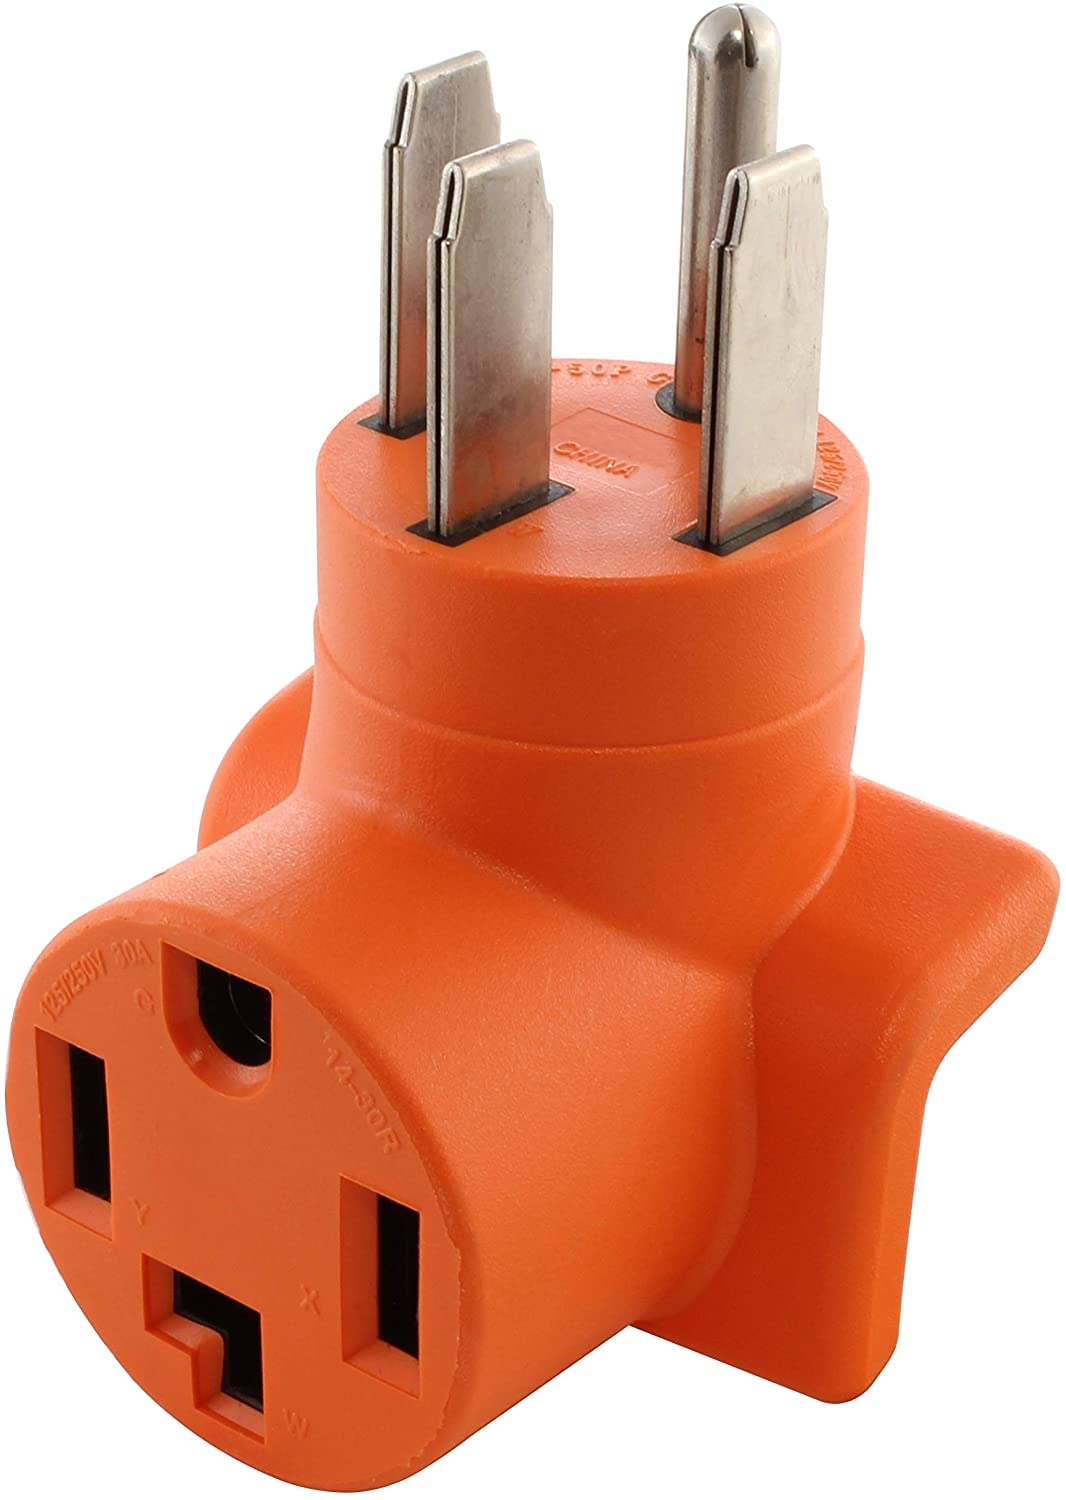 AC WORKS [AD14501430] 14-50P 50Amp 4-Prong Plug to 14-30R 4-Prong Dryer Outlet